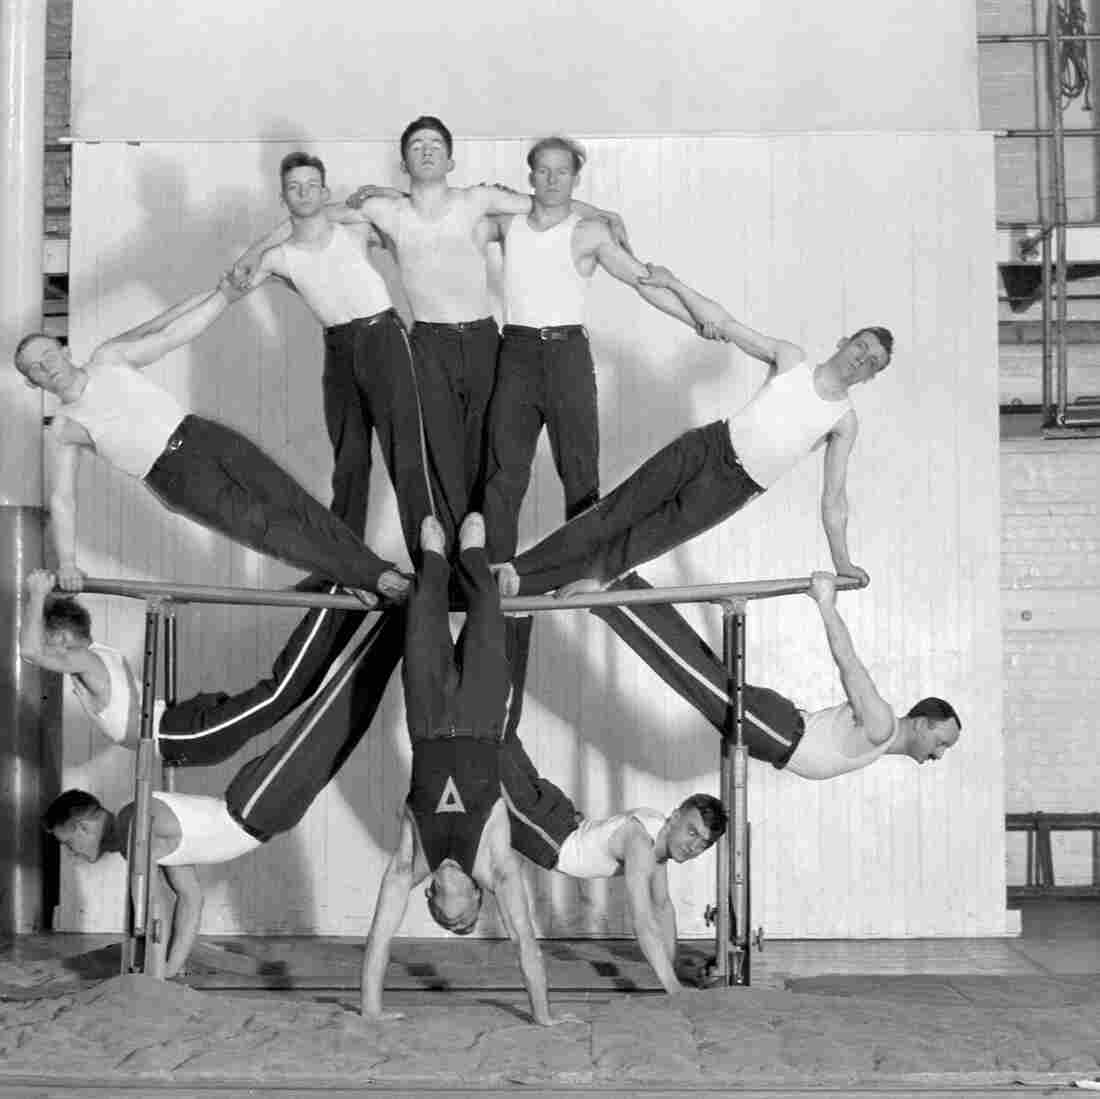 An adult gymnastics club performs a group stunt on the parallel bars at the Rochester, N.Y., YMCA at the beginning of the 20th century.